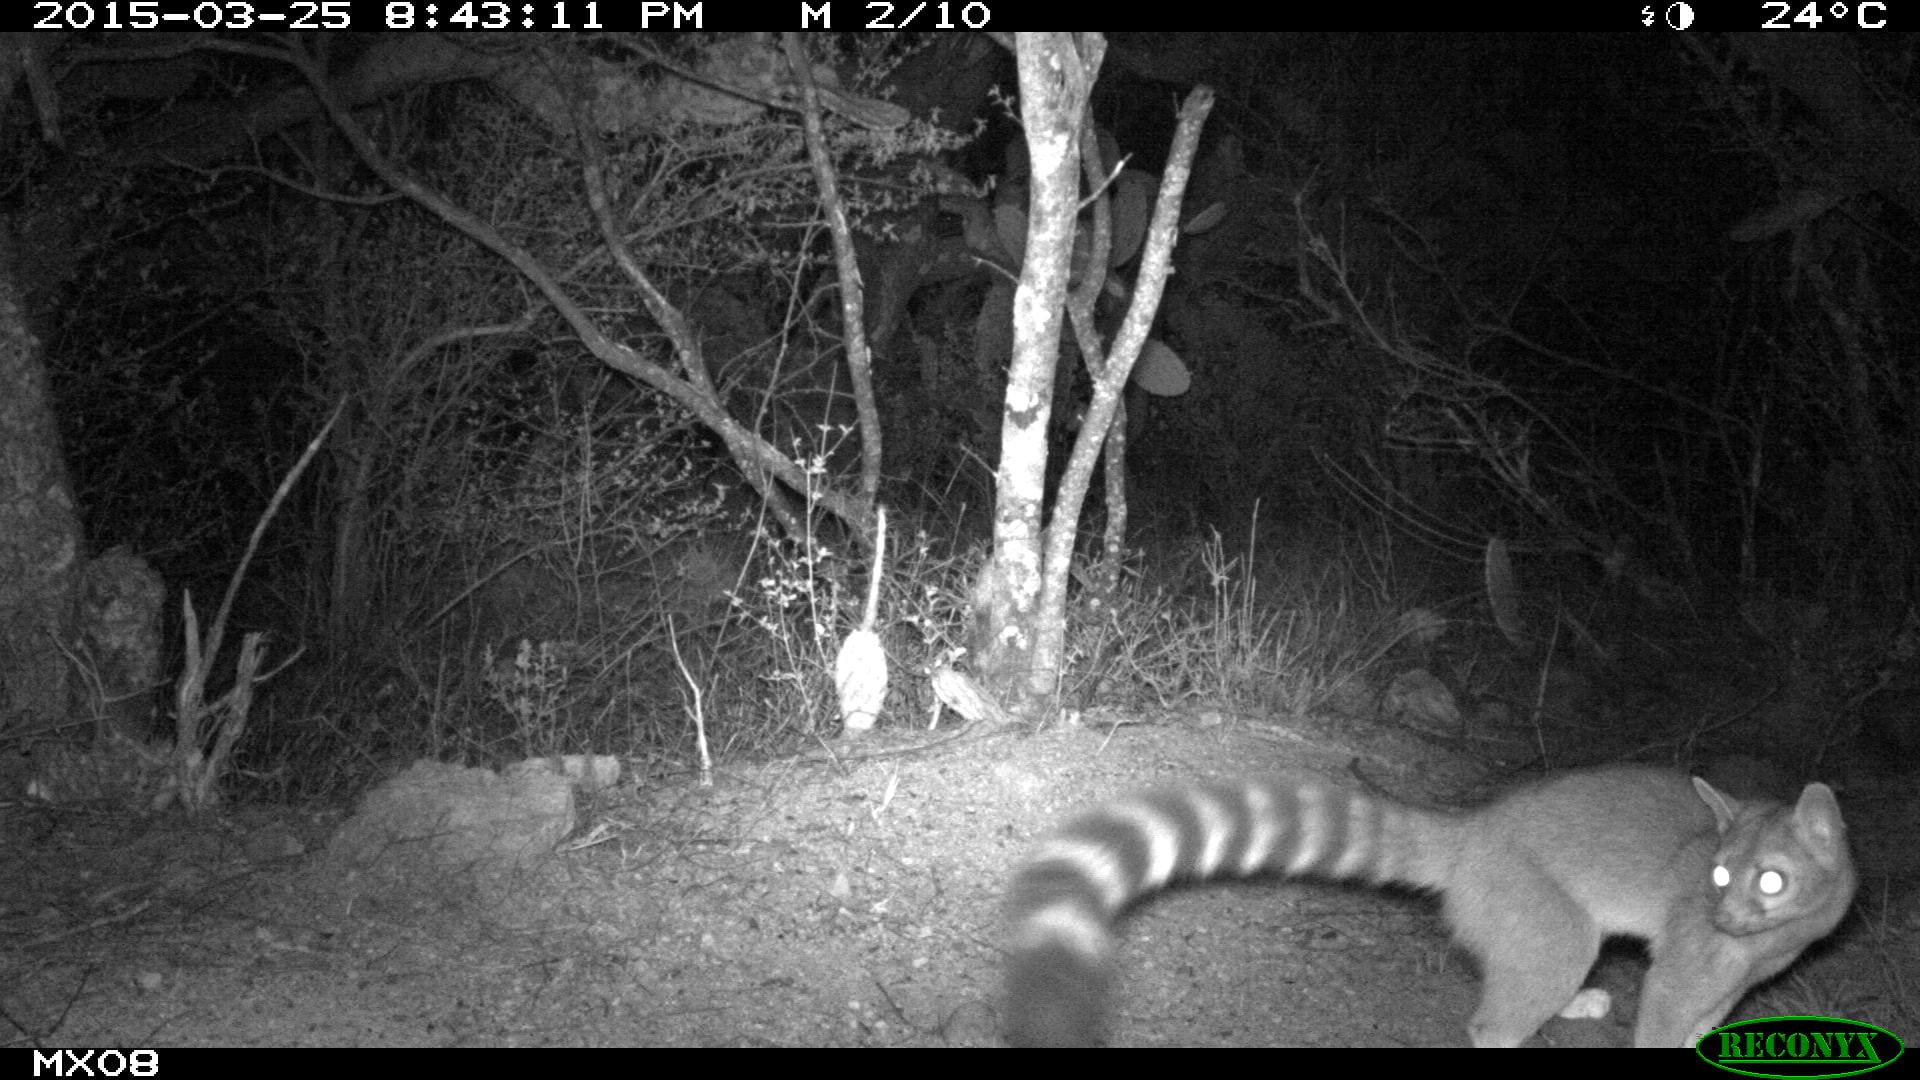 ringtail Camera Trap Photos from Mexico